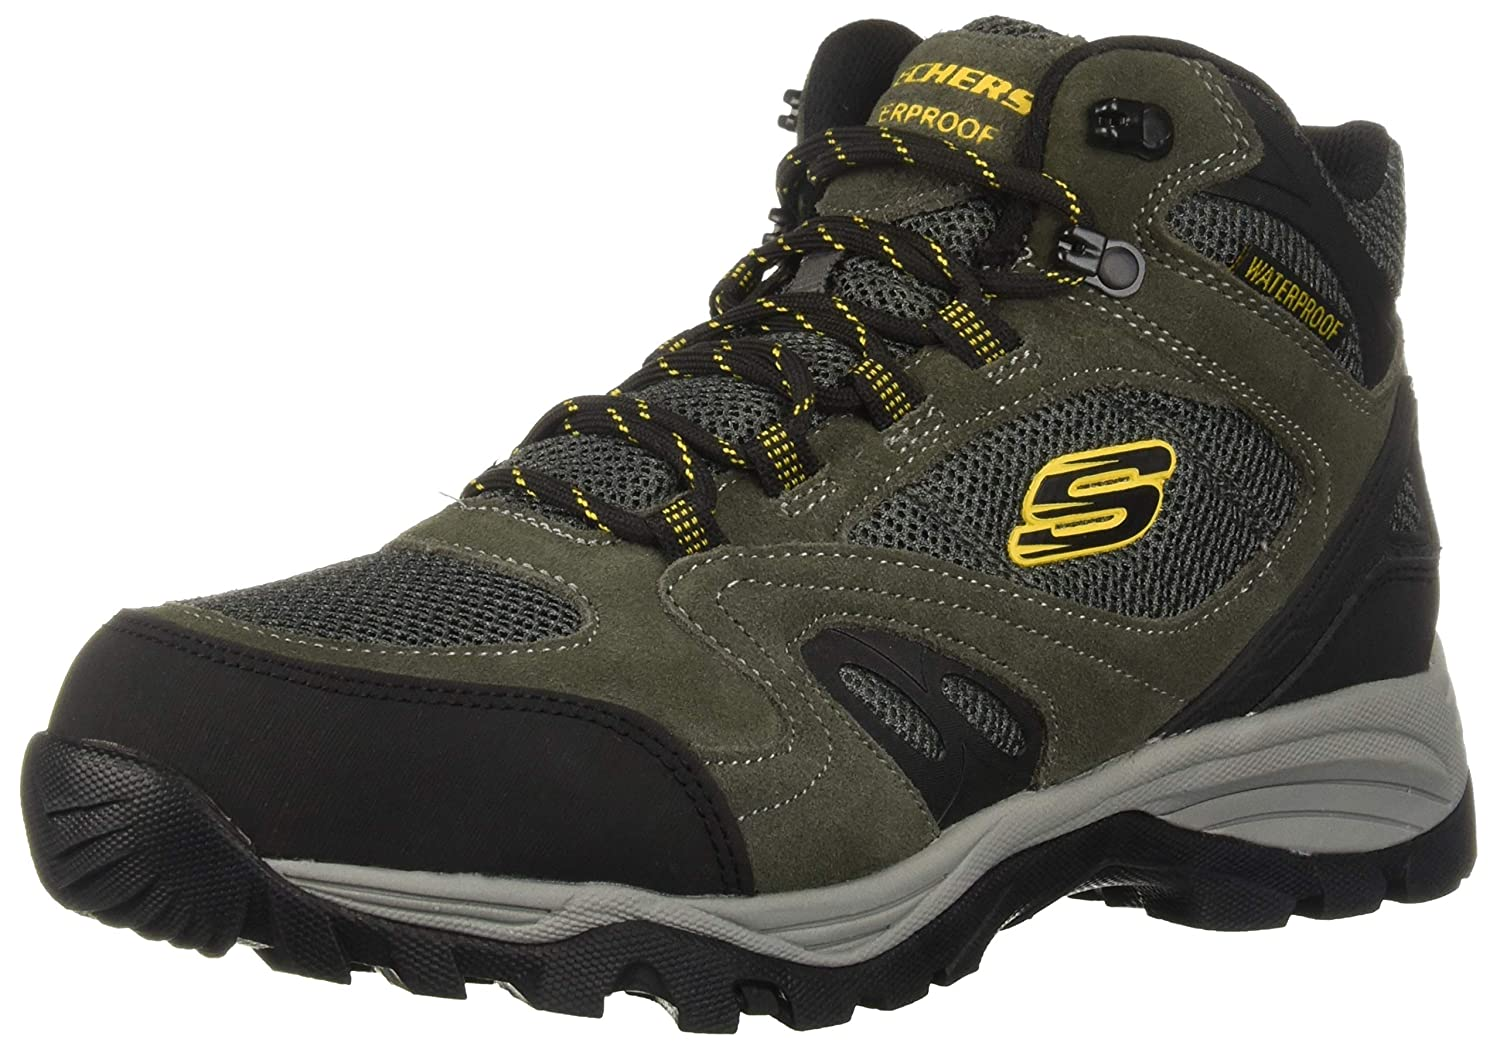 ebf4899b8b521 Amazon.com  Skechers Men s Rolton-Elero Hiking Boot  Shoes